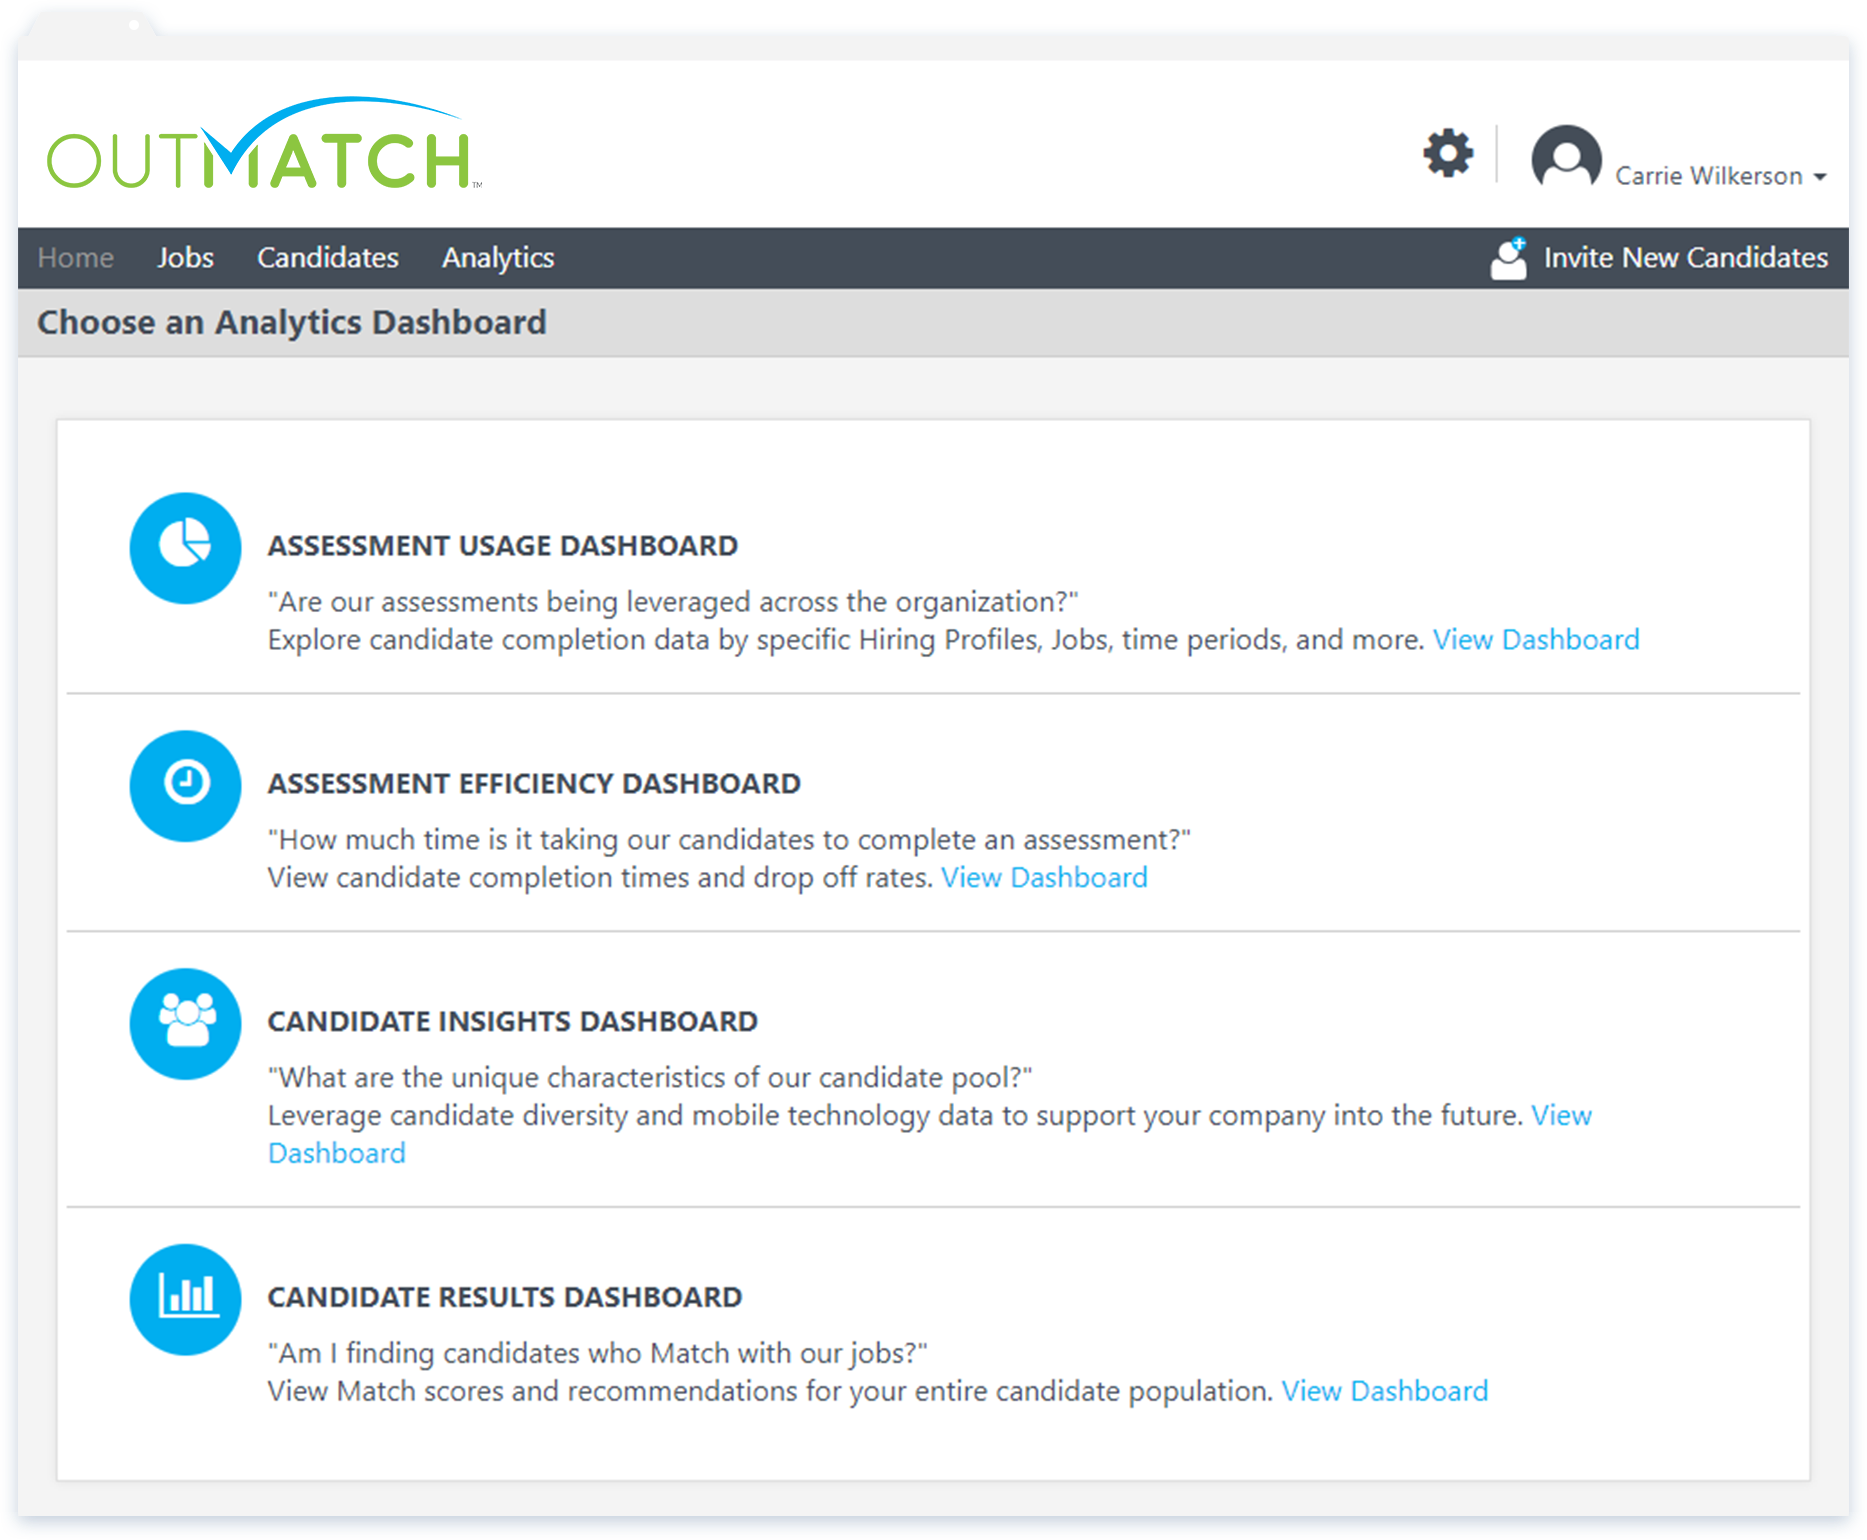 A number of pre-built analytics dashboards are available summarizing assessment usage and efficiency, plus candidate insights or results